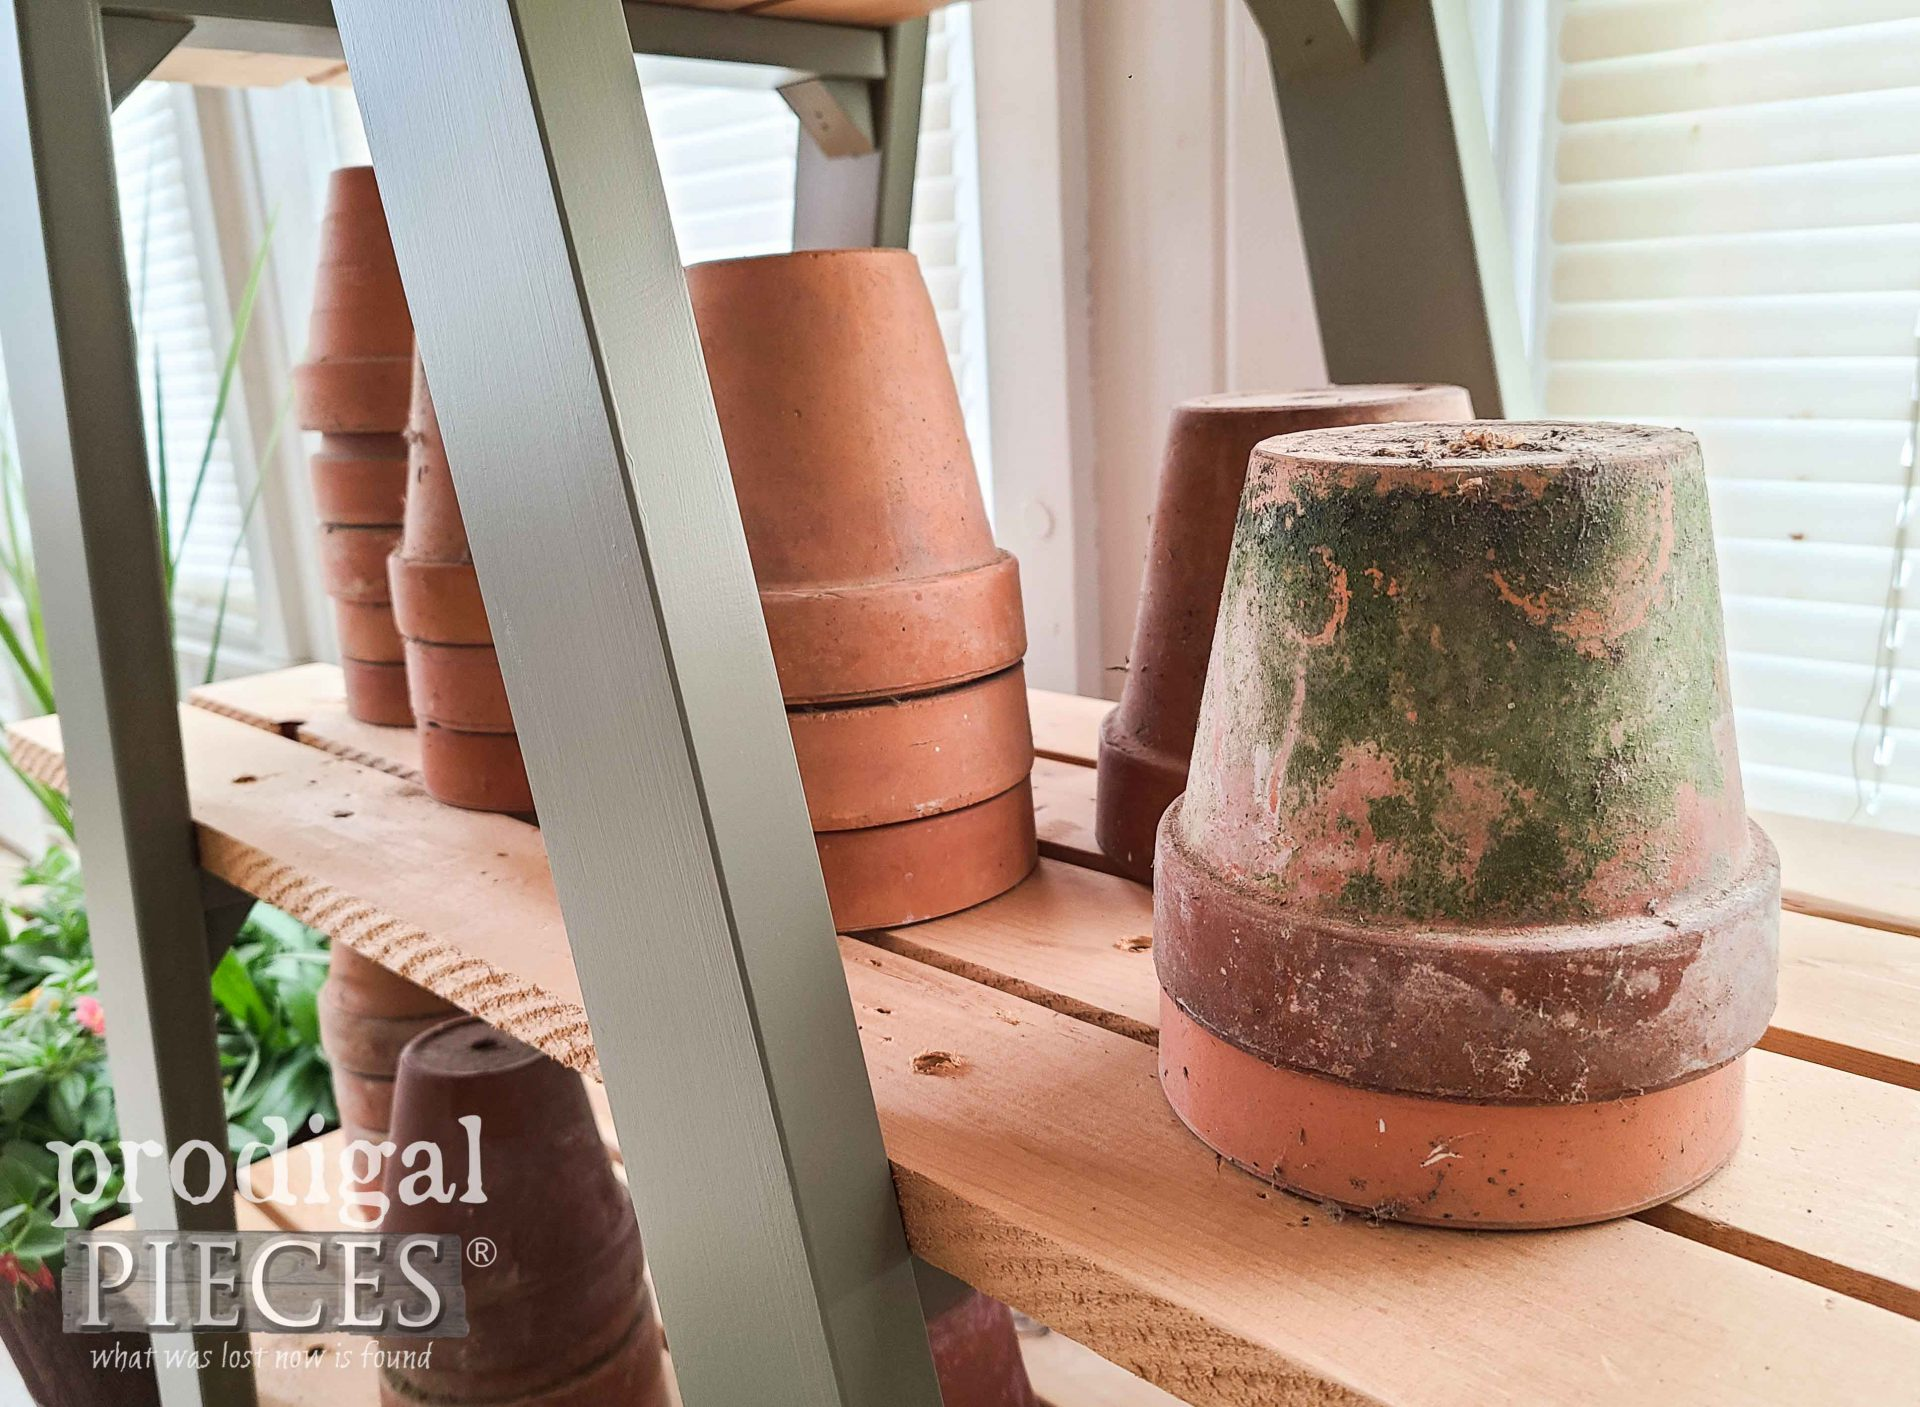 Terra Cotta Pot with Patina by Prodigal Pieces | prodigalpieces.com #prodigalpieces #garden #home #homedecor